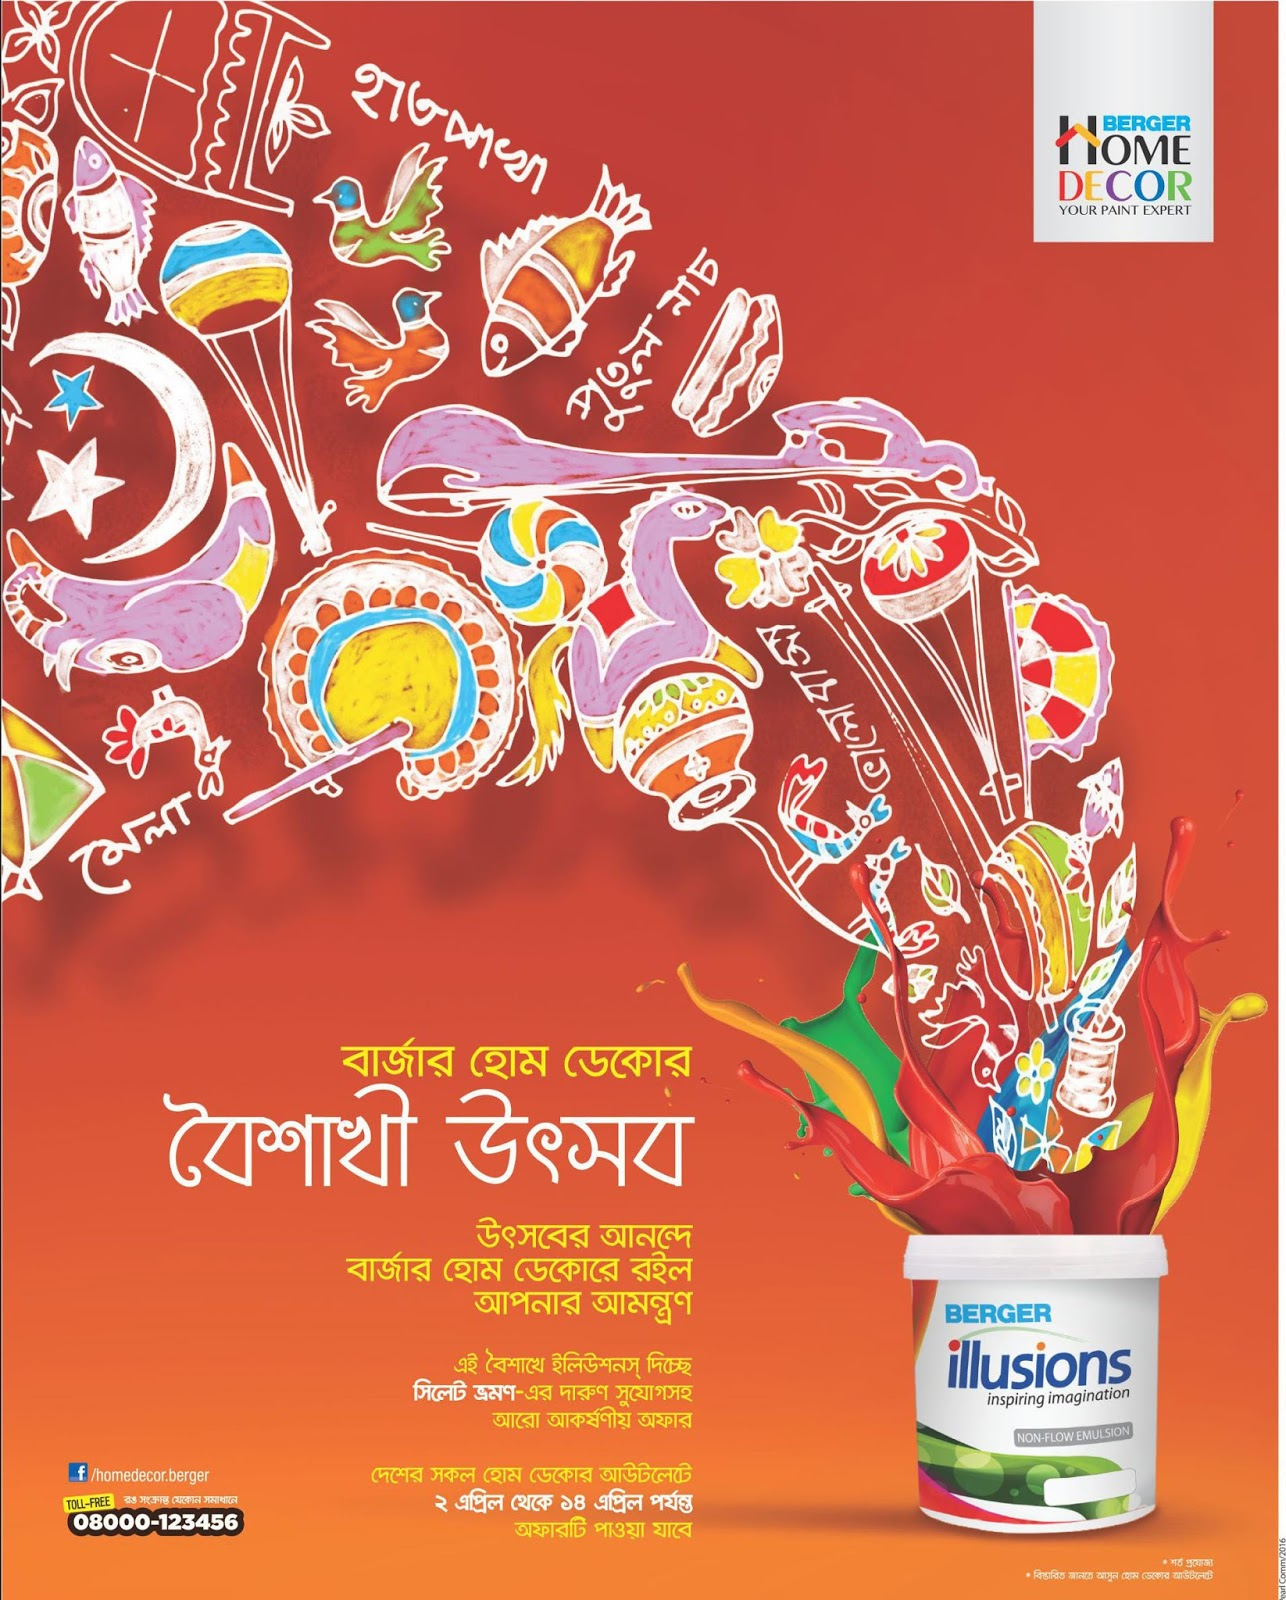 market study of berger paints bangladesh limited Satisfaction level of berger paints bangladesh limited berger, the market leader in the bangladesh paint market, is one of the oldest names in the global paint industry.